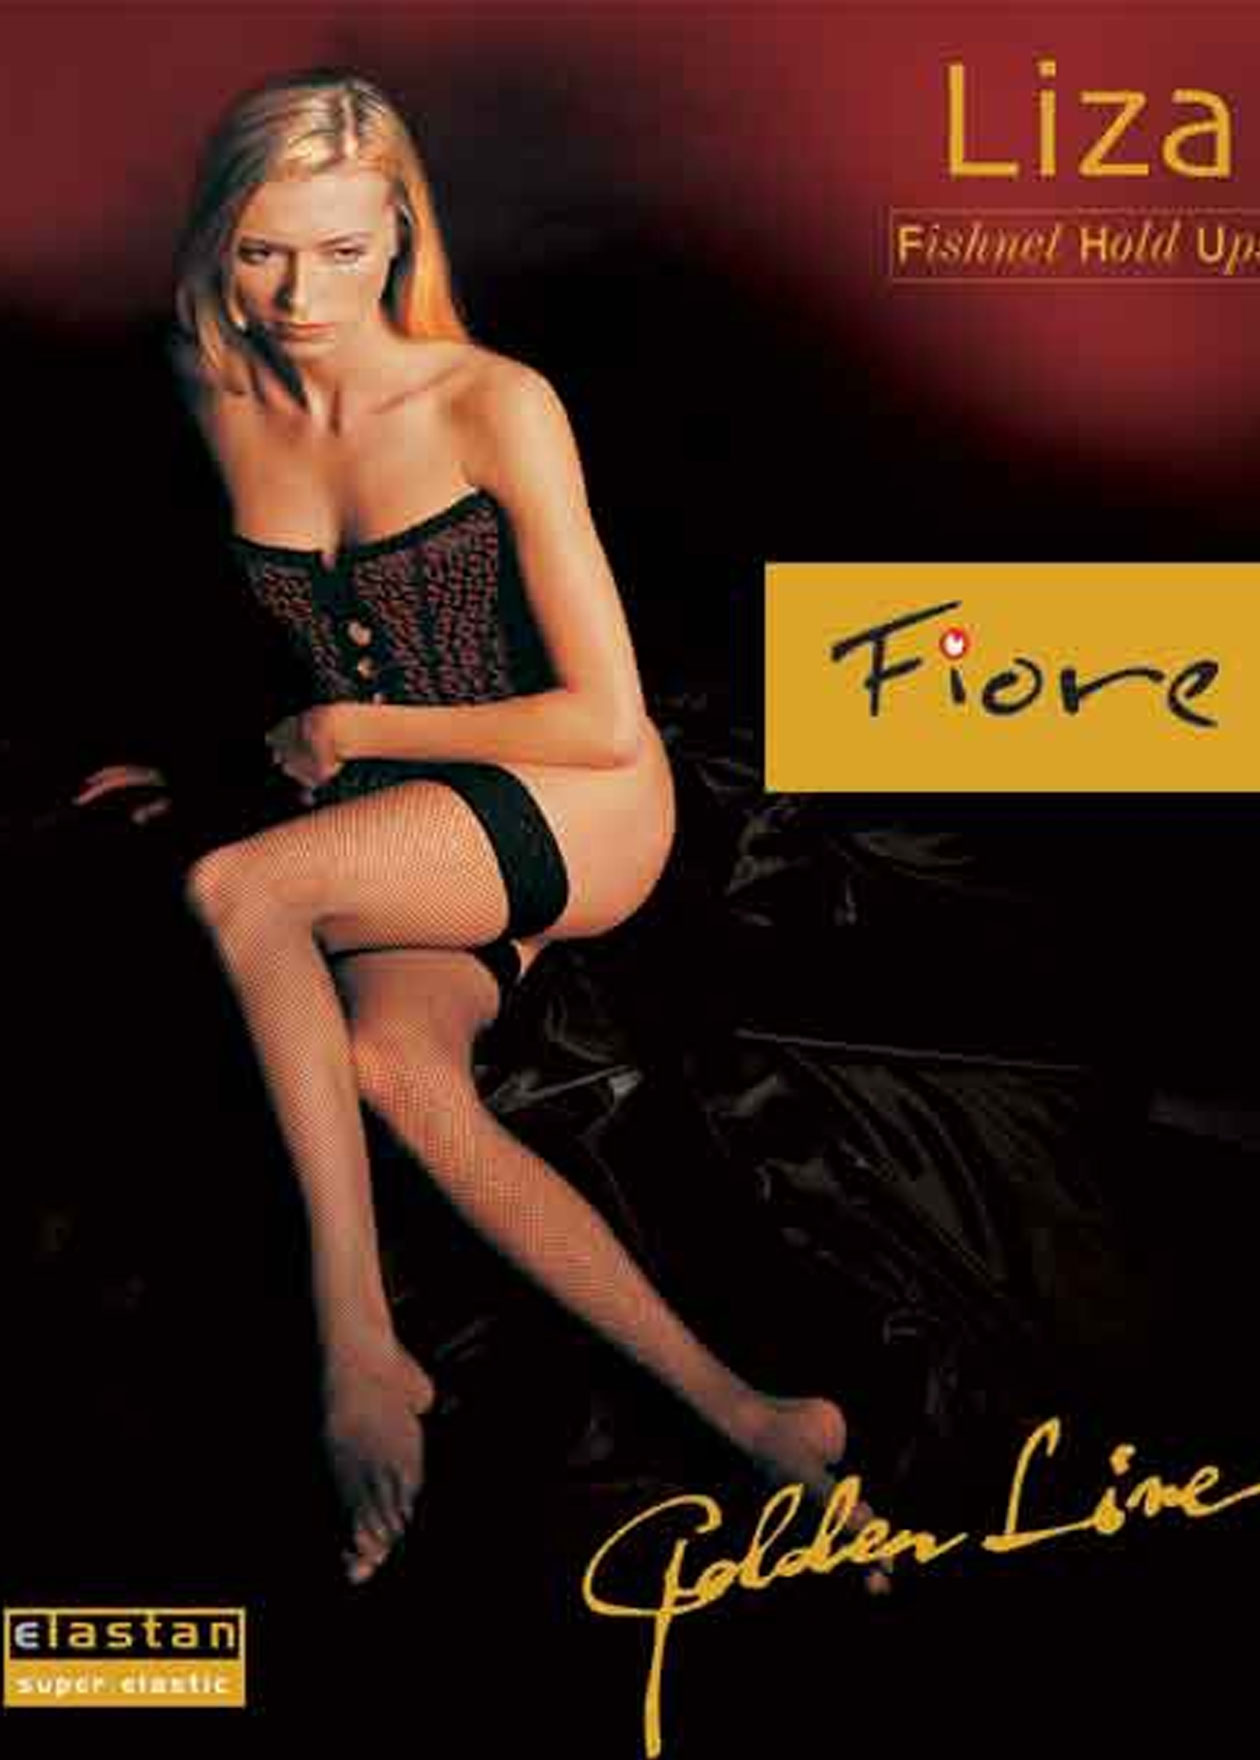 Fiore Lisa Fishnet